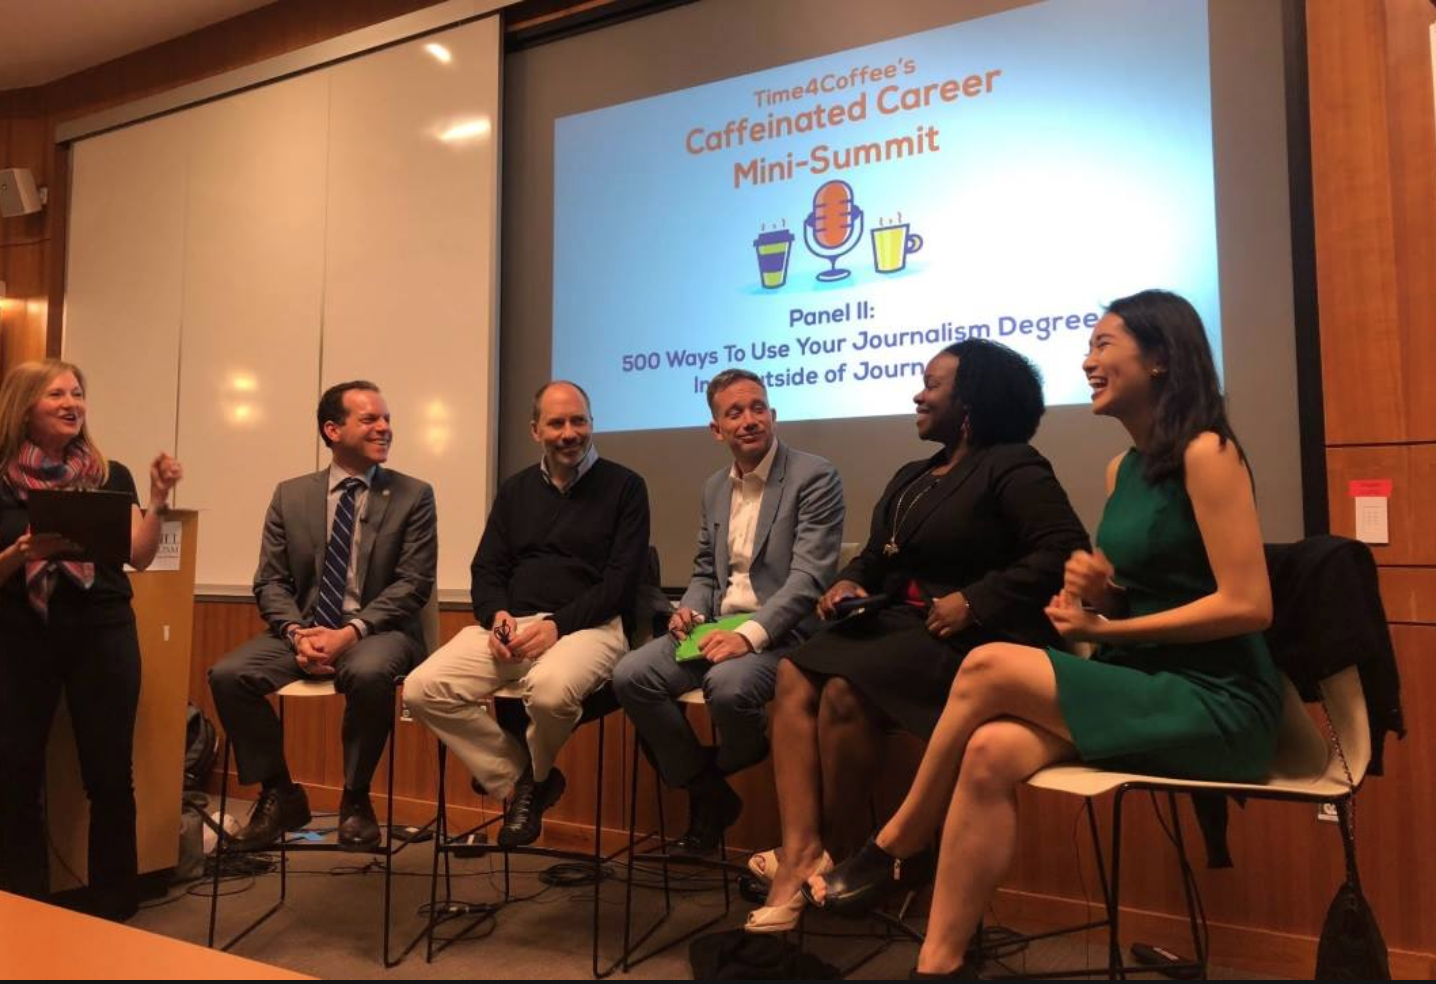 04/17/19: Caffeinated Career Mini-Summit